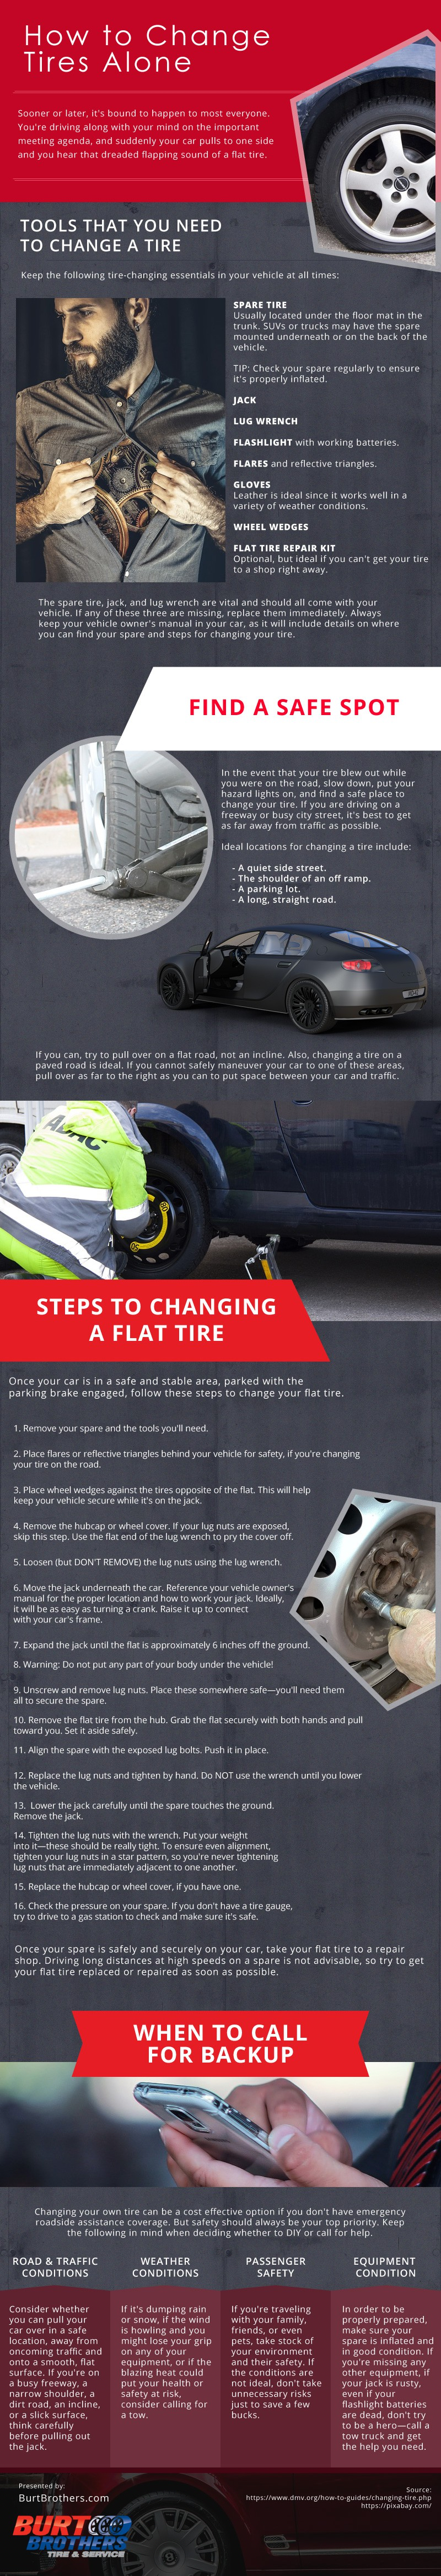 How-to-Change-Tires-Alone Infographic